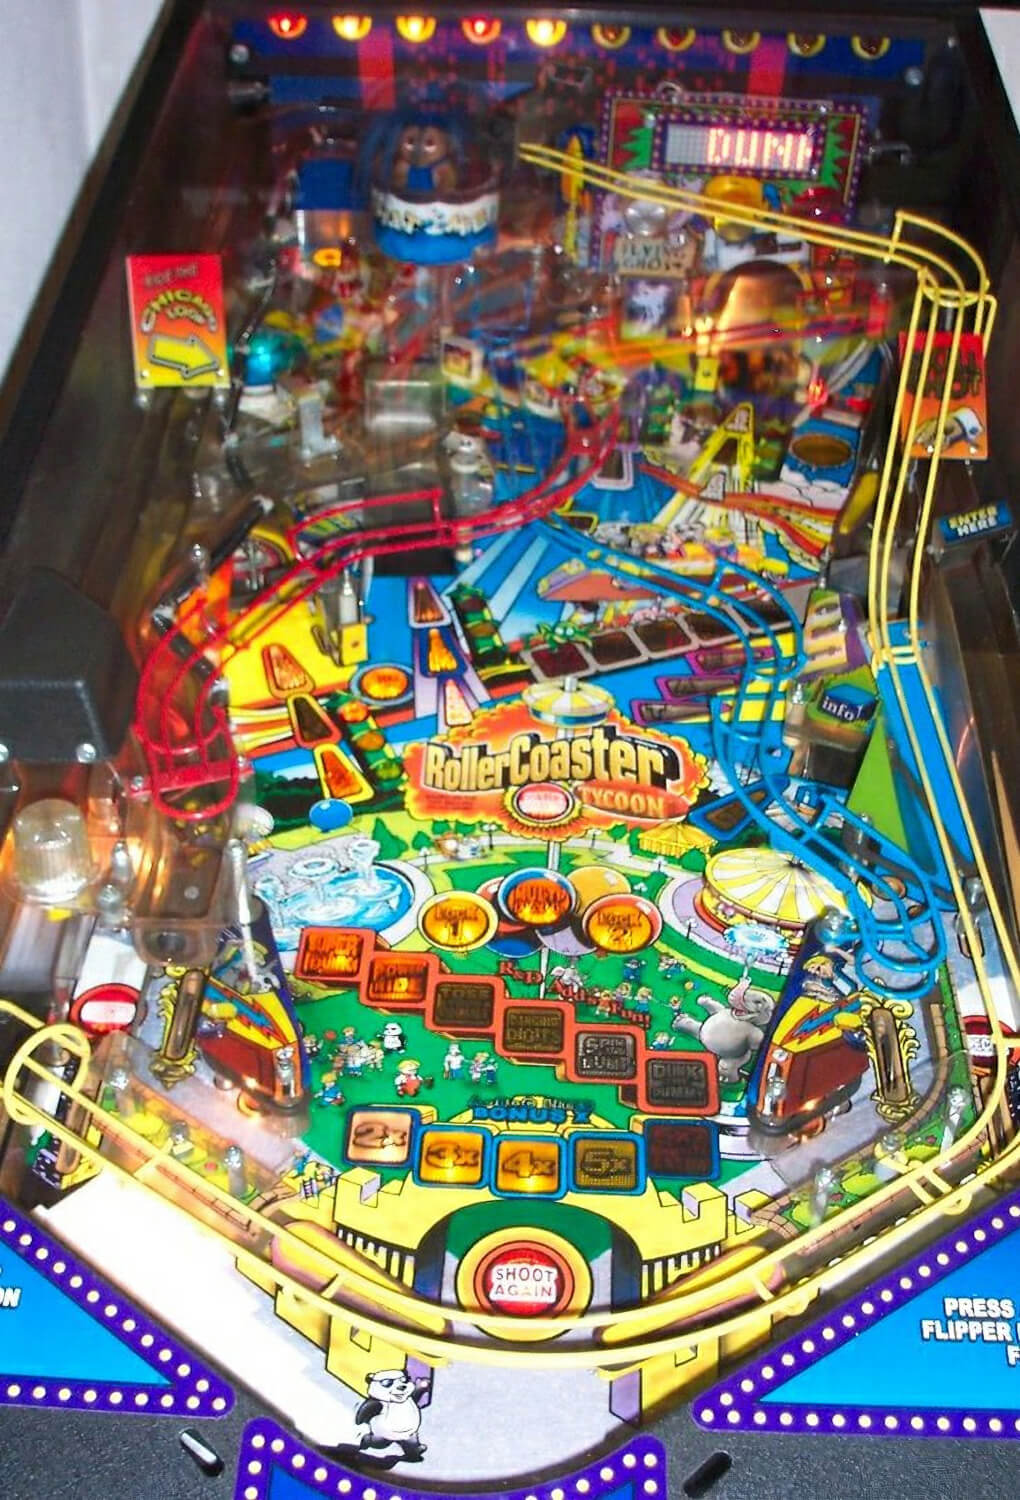 Rollercoaster Tycoon Pinball Machine Liberty Games